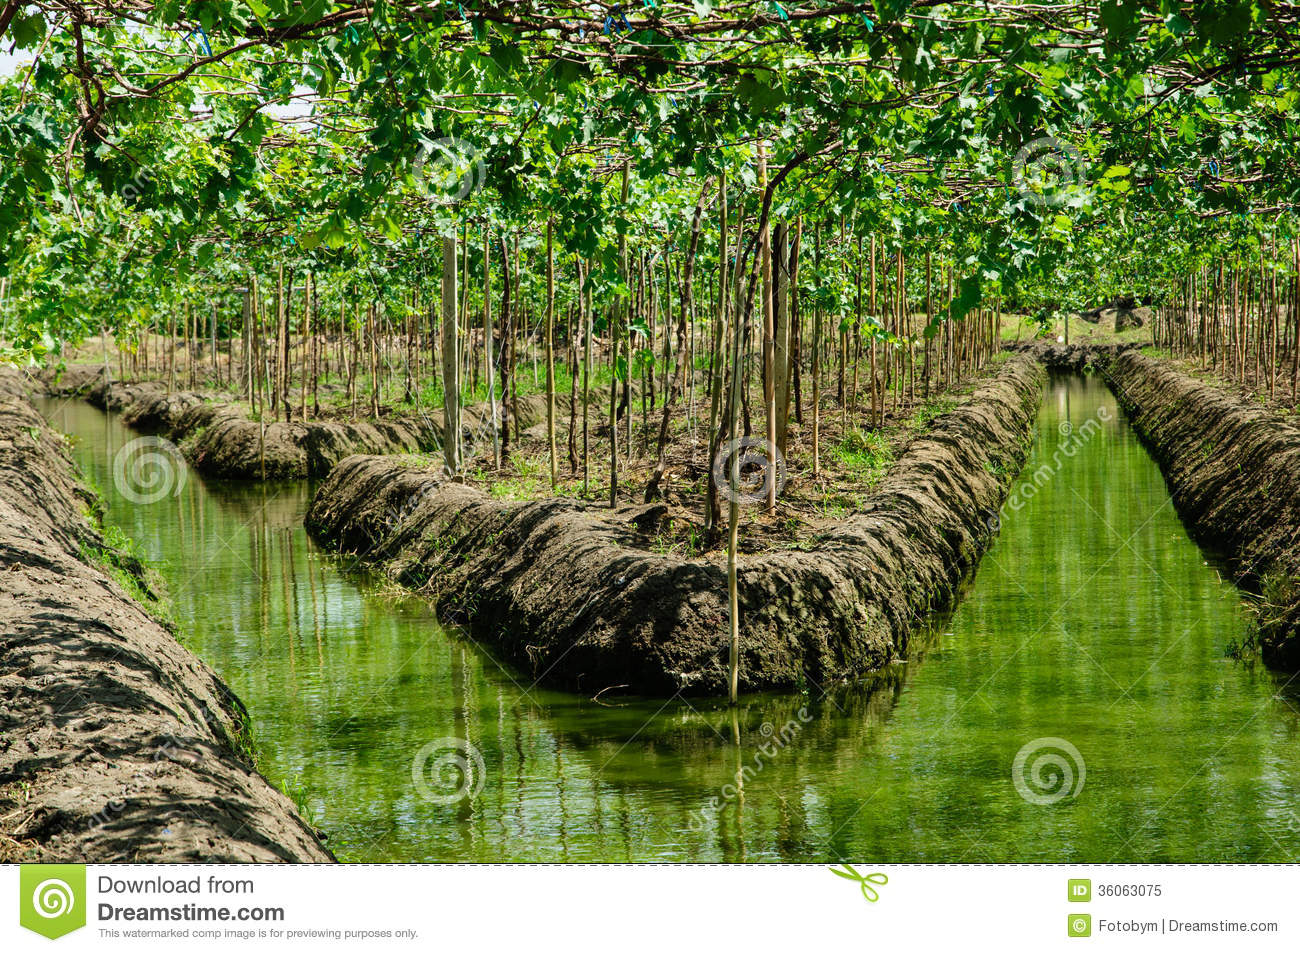 Grape Plant Or Vineyards And Irrigation Canals In Thailand